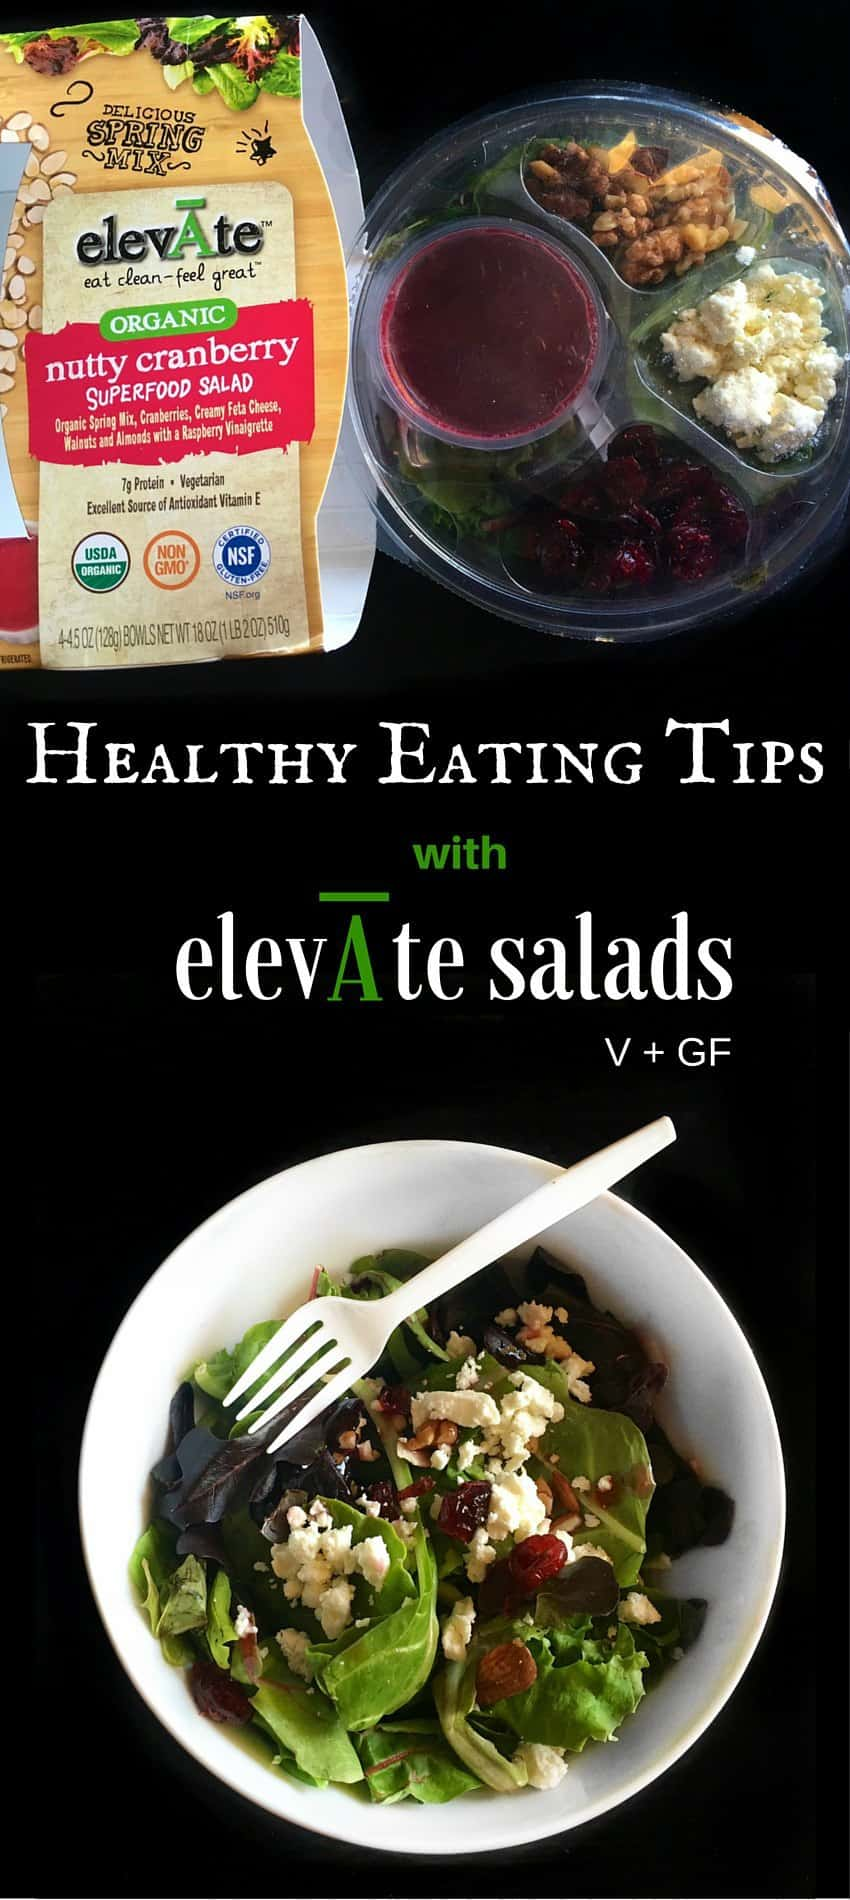 Healthy Eating Tips with elevate Salads : #ad #elevatesalads #healthy #tips #